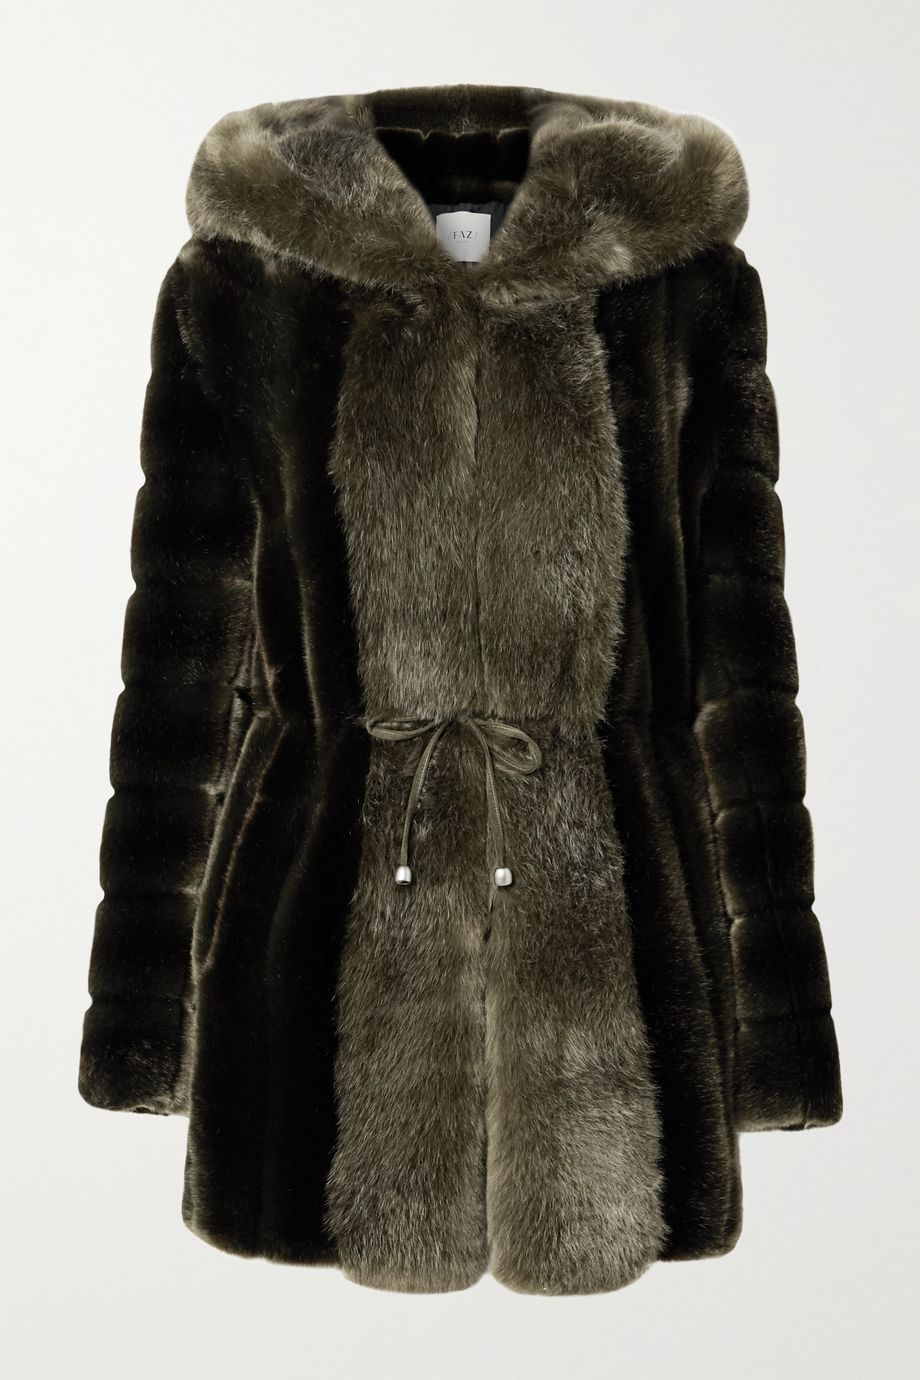 Faz Not Fur Skate Moss hooded two-tone faux fur coat